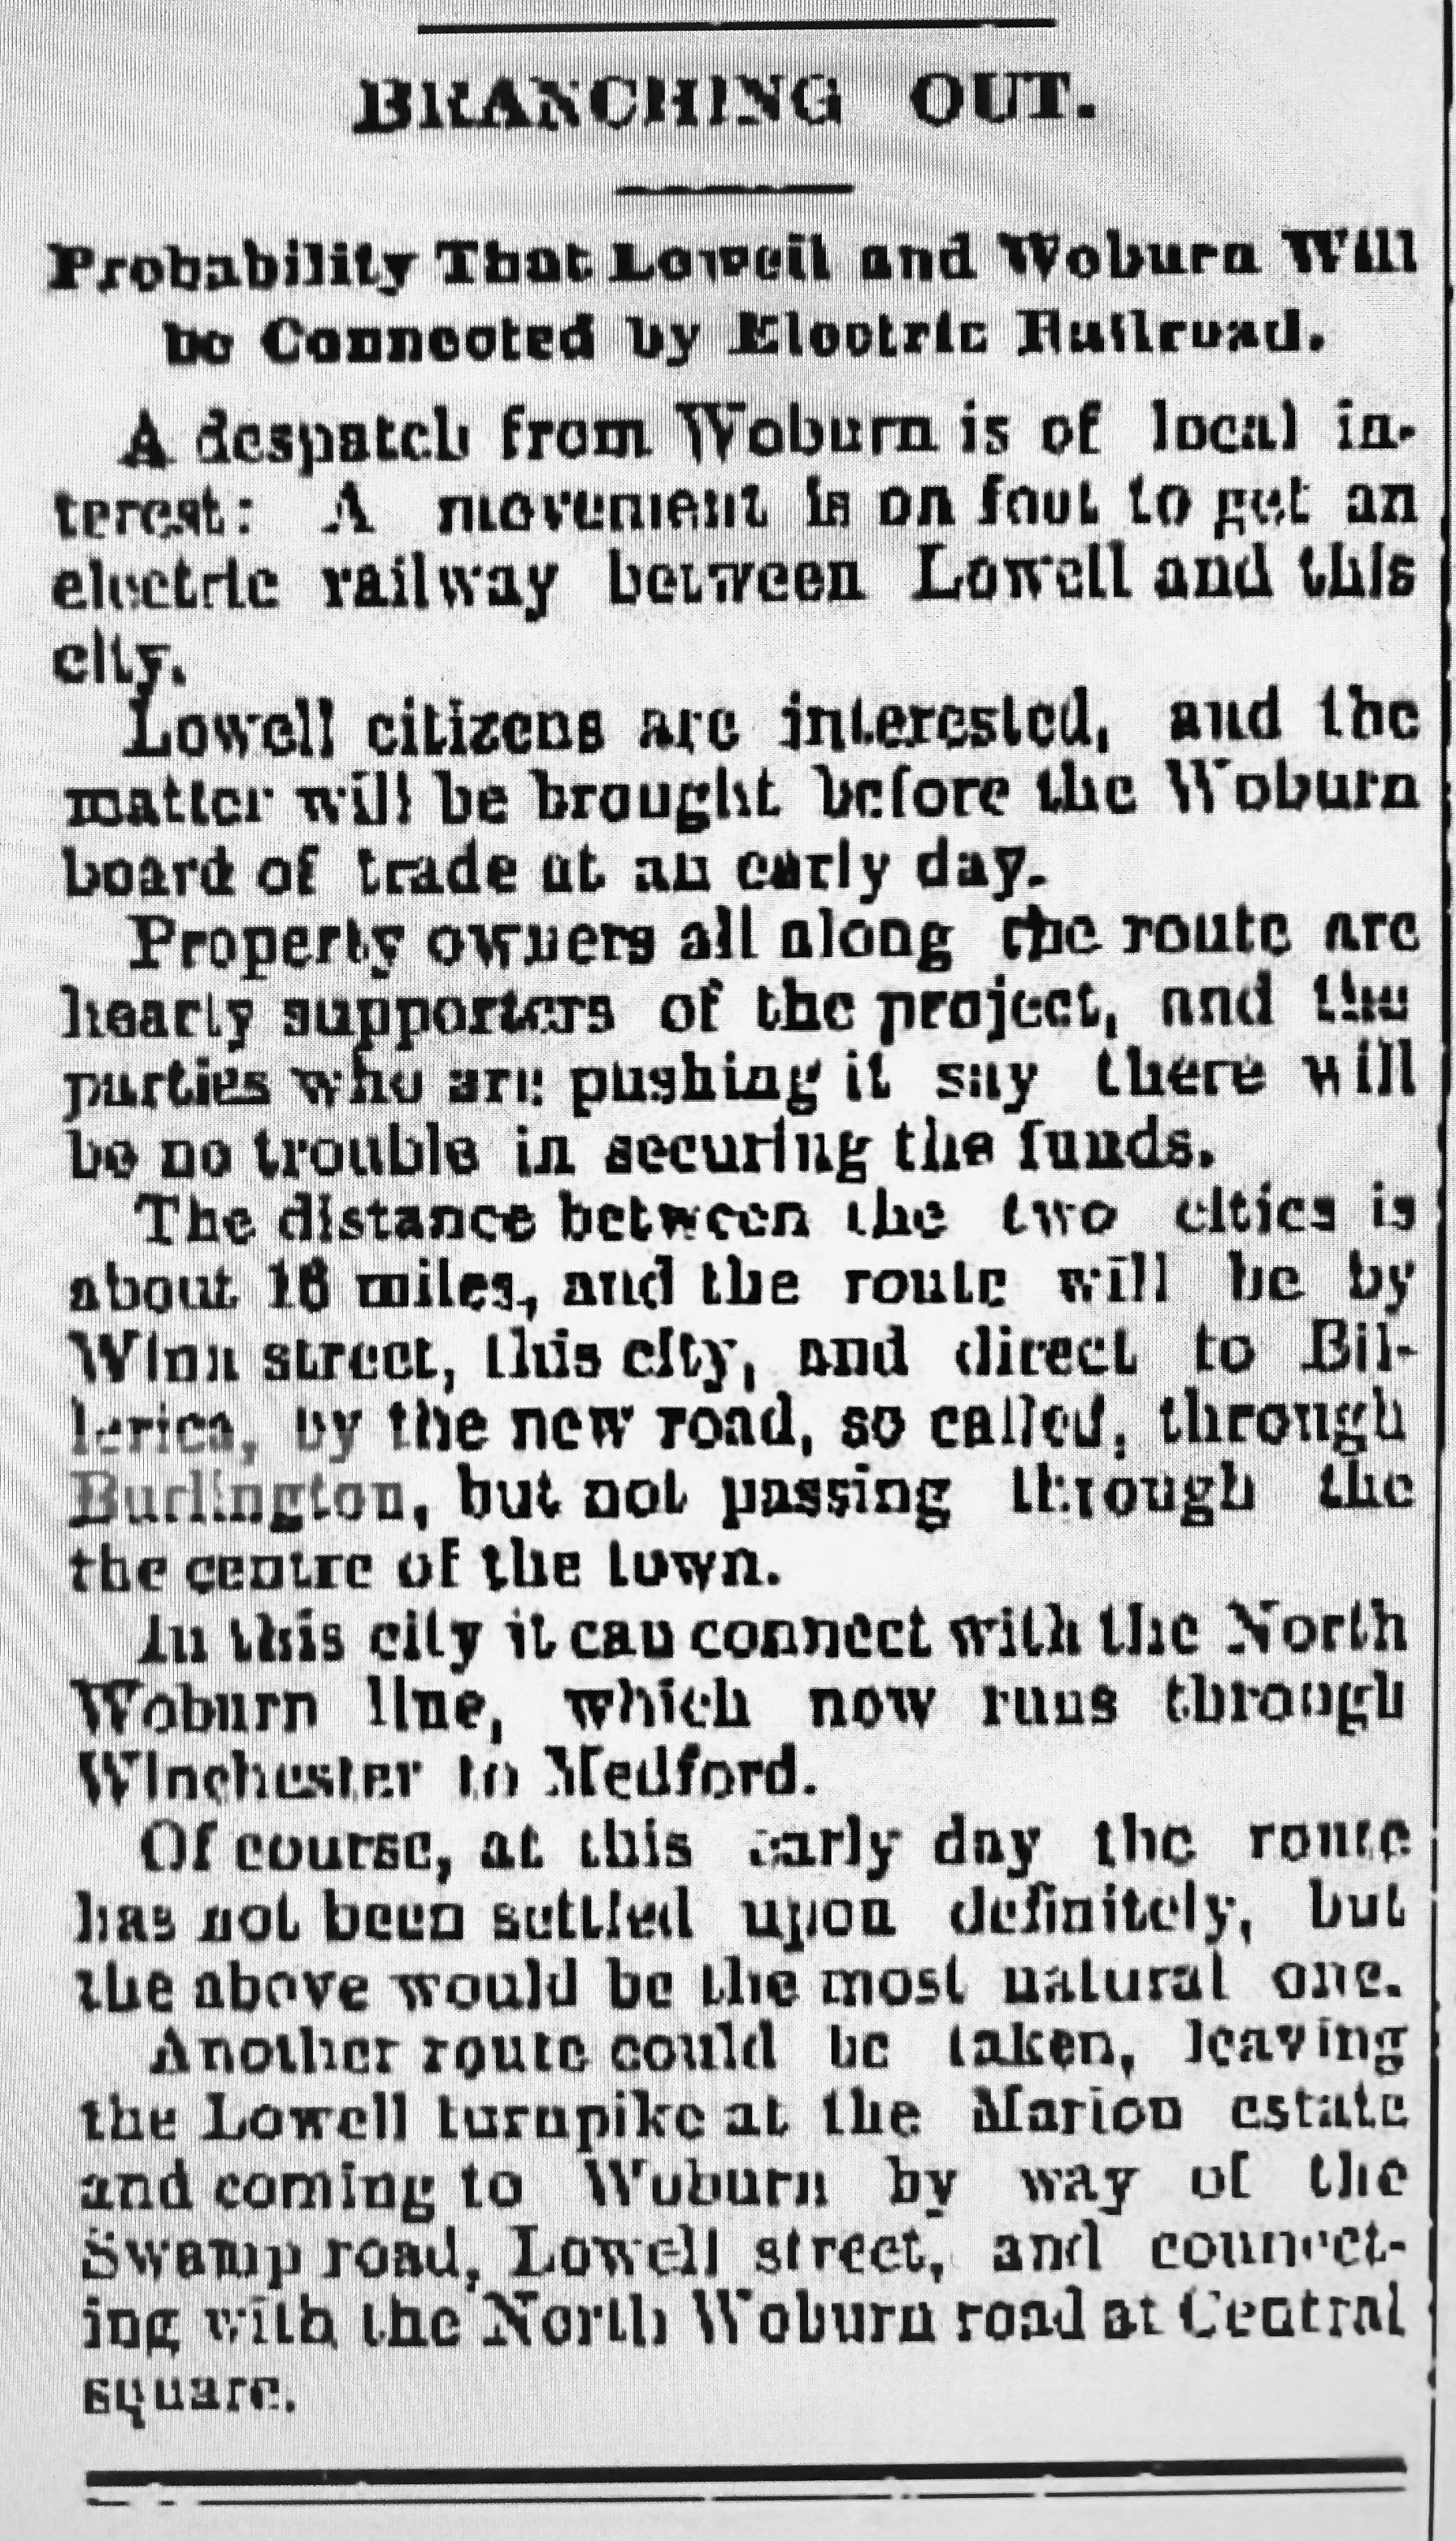 Electric railroad proposed from Woburn to Lowell, through Burlington MA